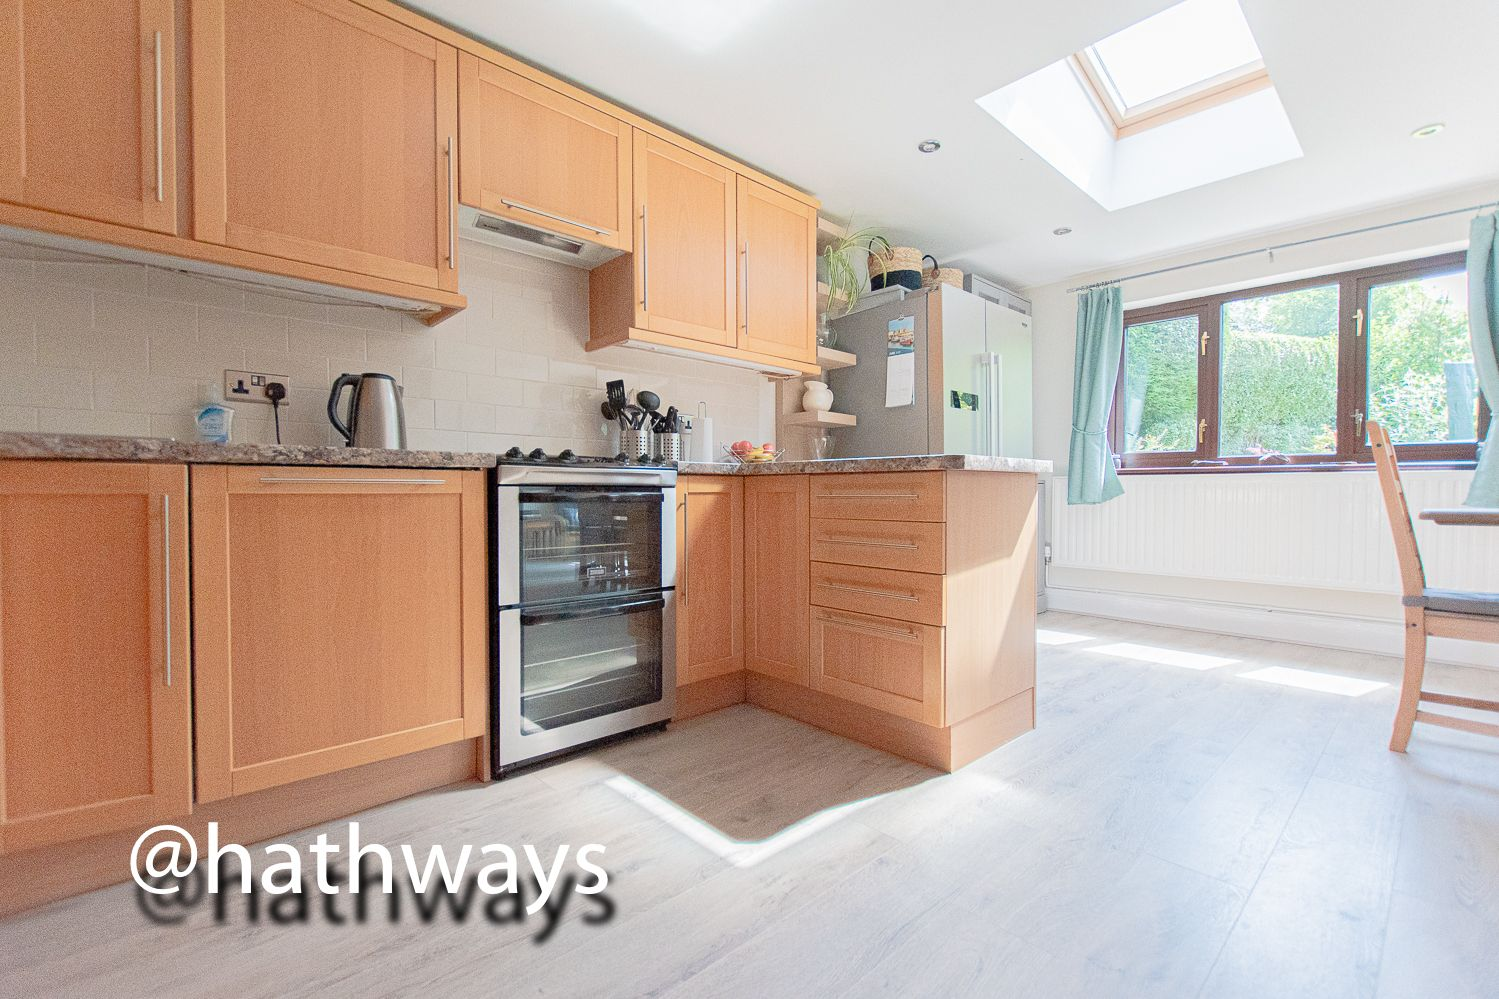 4 bed house for sale in Ashford Close South 18